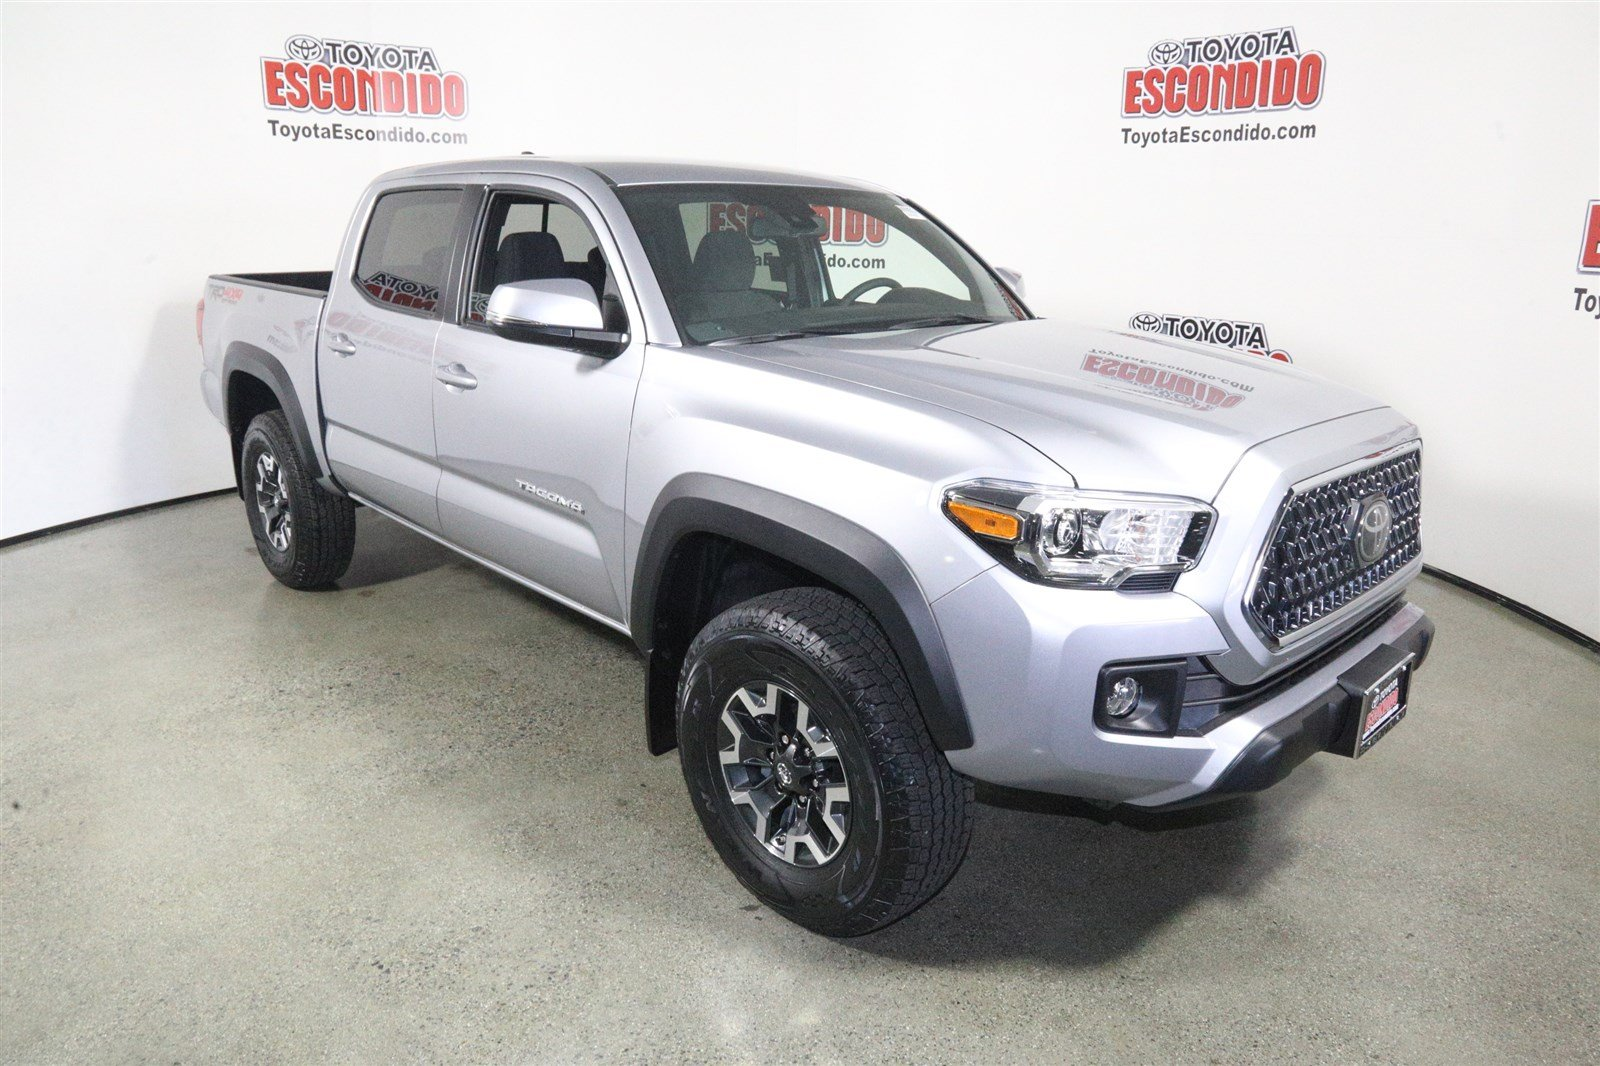 New 2018 Toyota Tacoma Trd Off Road Double Cab Pickup In Escondido